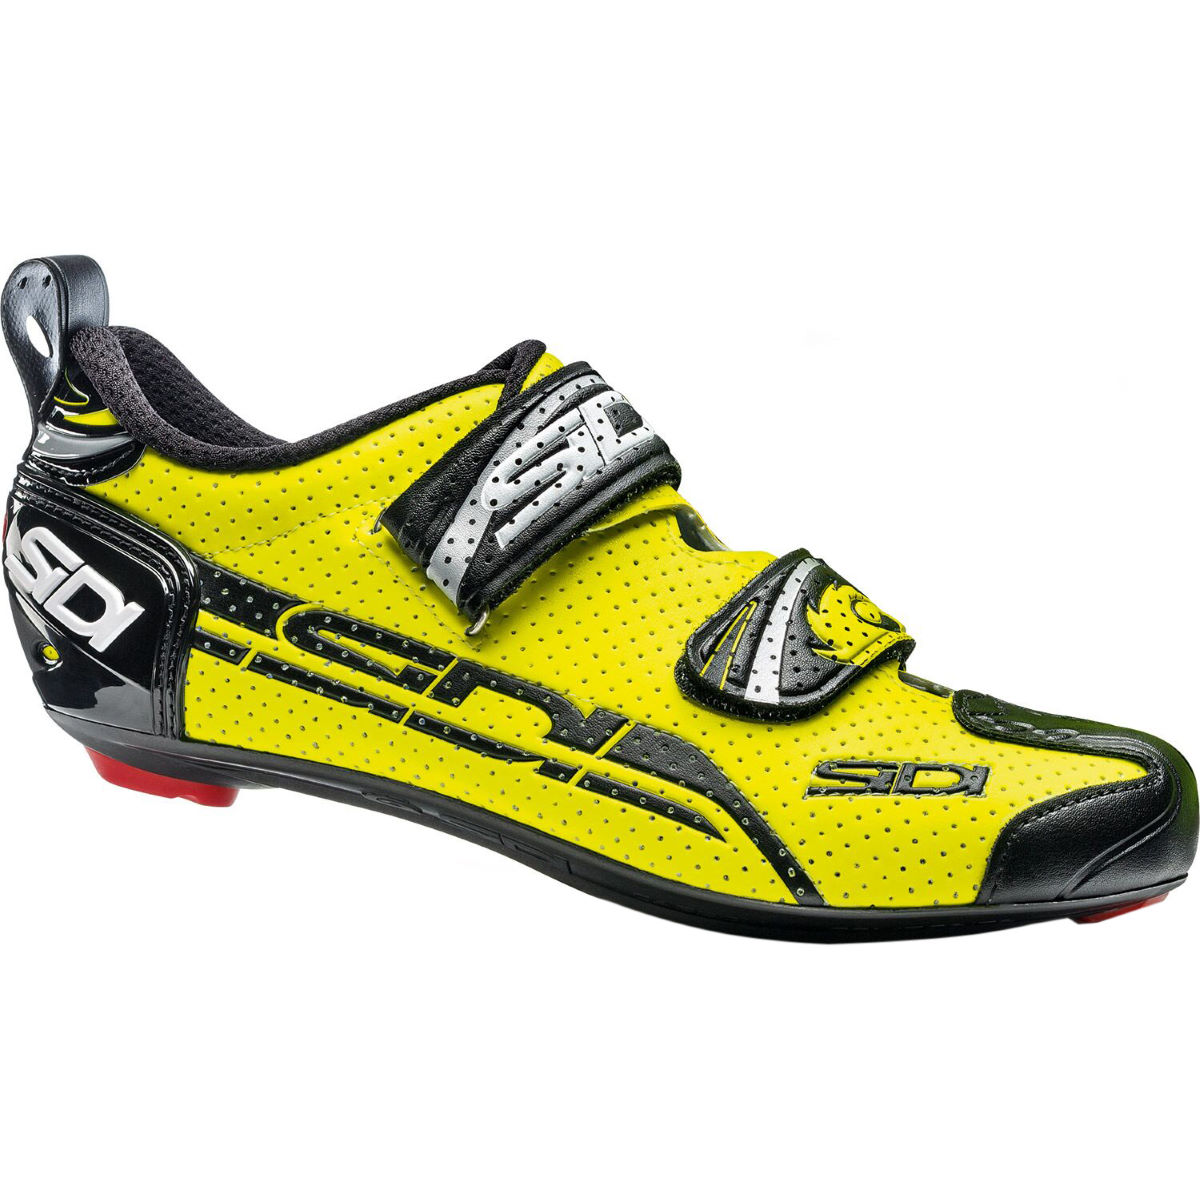 Chaussures de triathlon Sidi T-4 Air (carbone) - 40